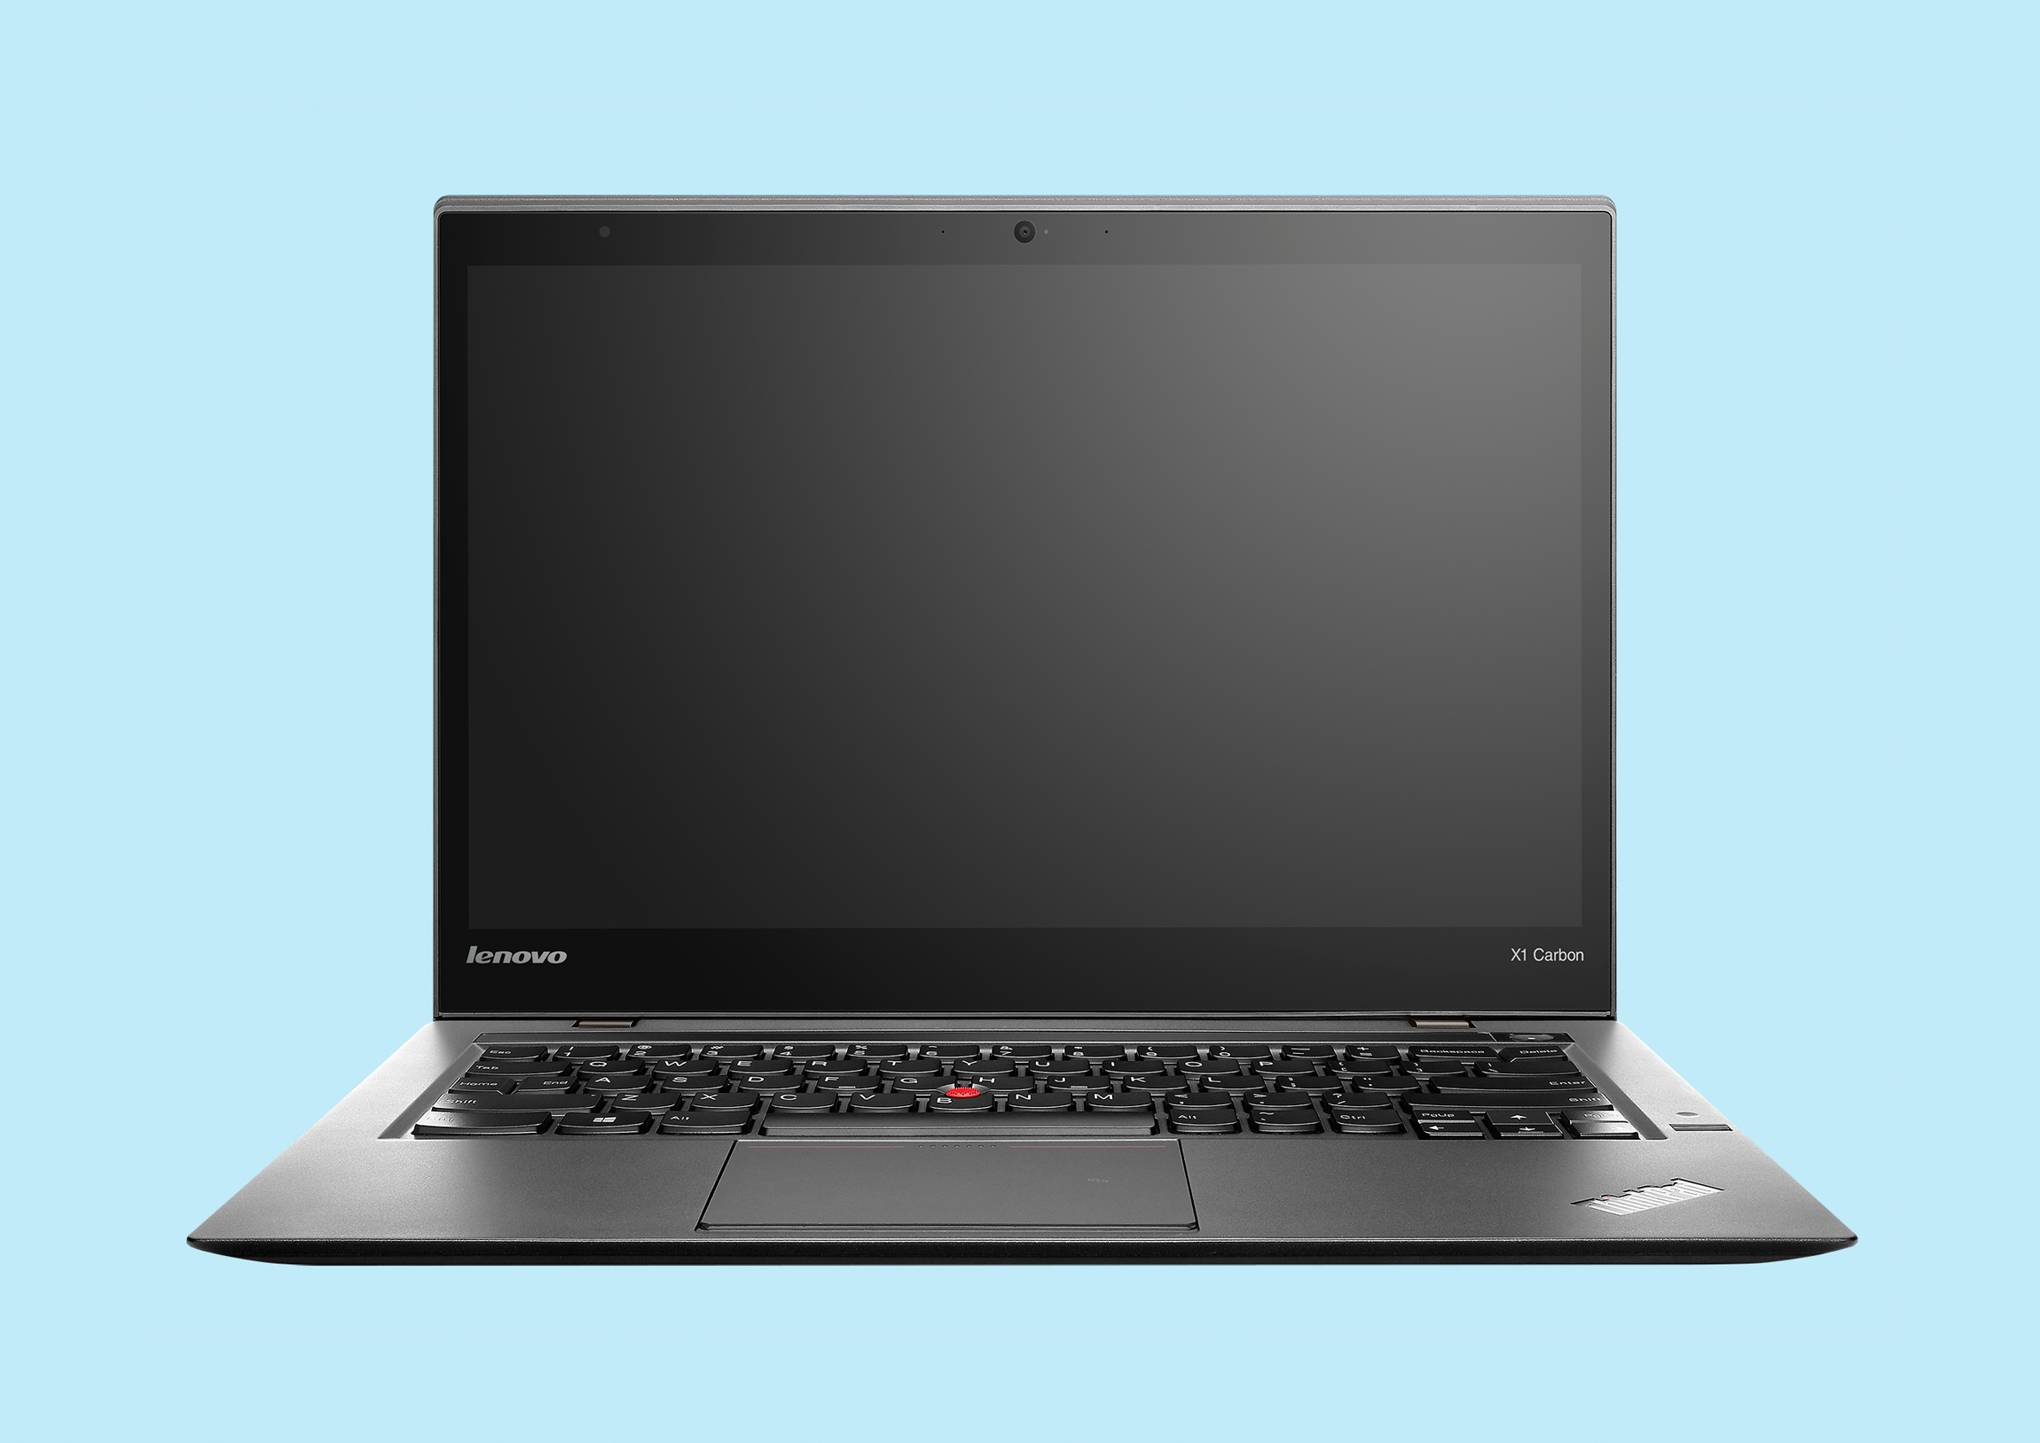 good laptop for light gaming and video editing